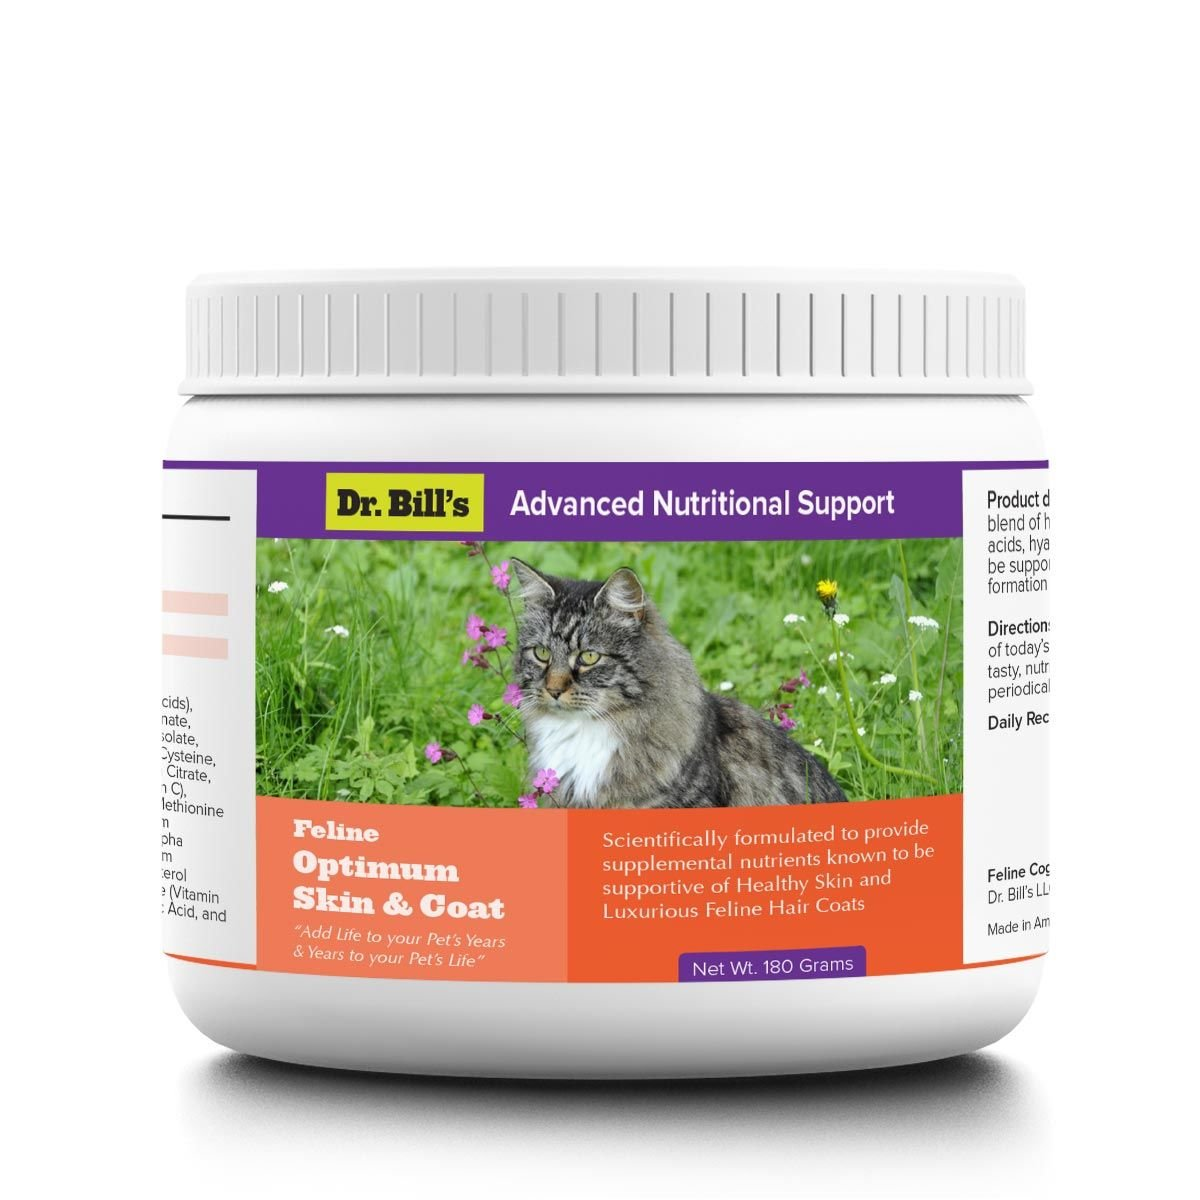 Dr. Bill's Feline Optimum Skin & Coat Pet Supplement - With Type I & III Marine Collagens and Omega 3 Fatty Acids